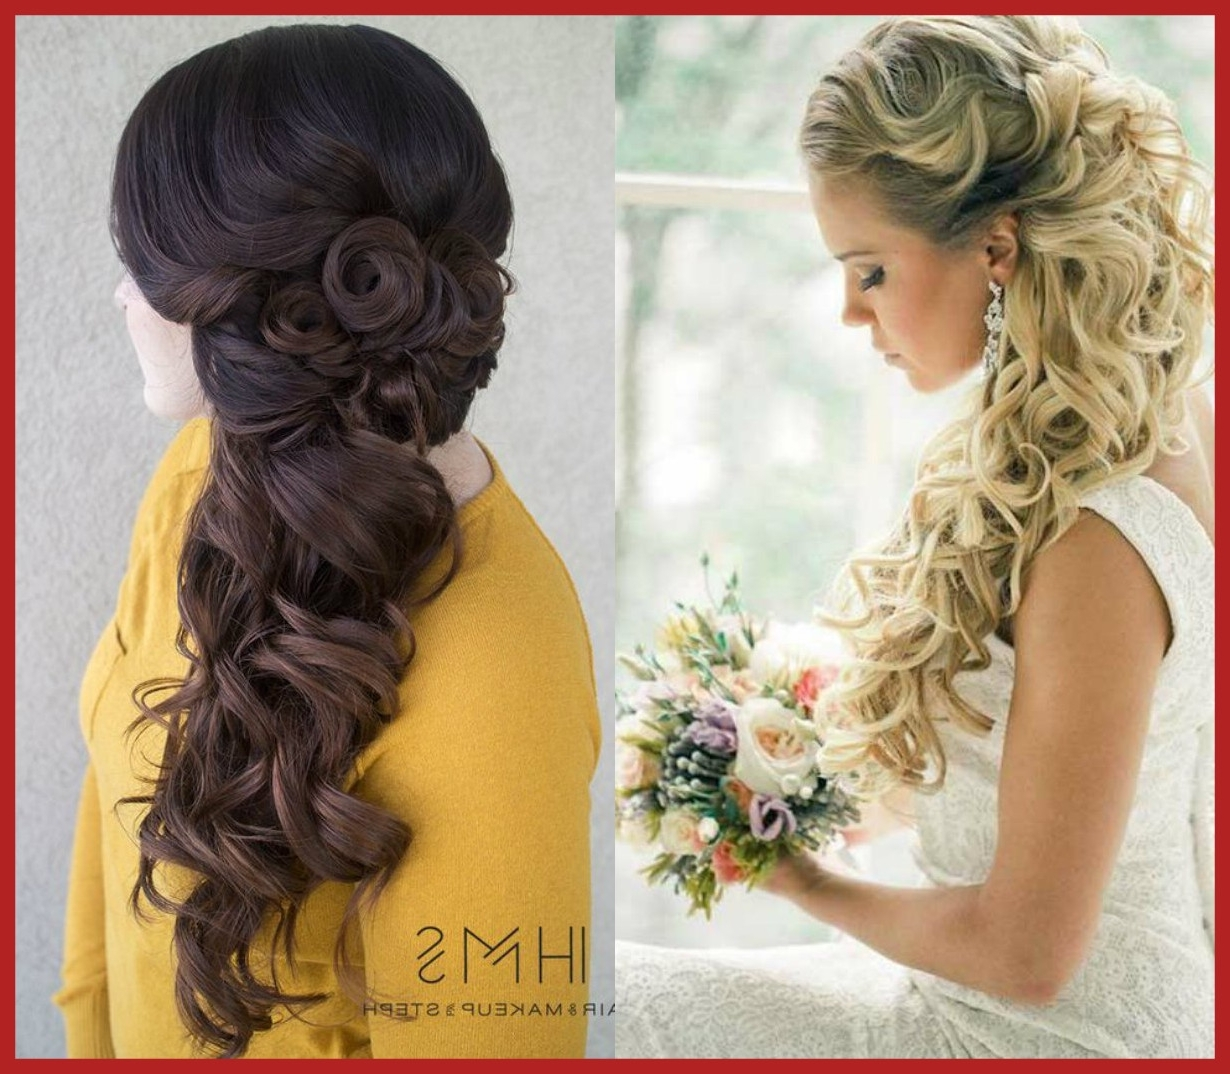 Well Known Up And Down Wedding Hairstyles Within Unbelievable Half Up Down Bridal With Veil Trend Hairstyle And Image (View 15 of 15)